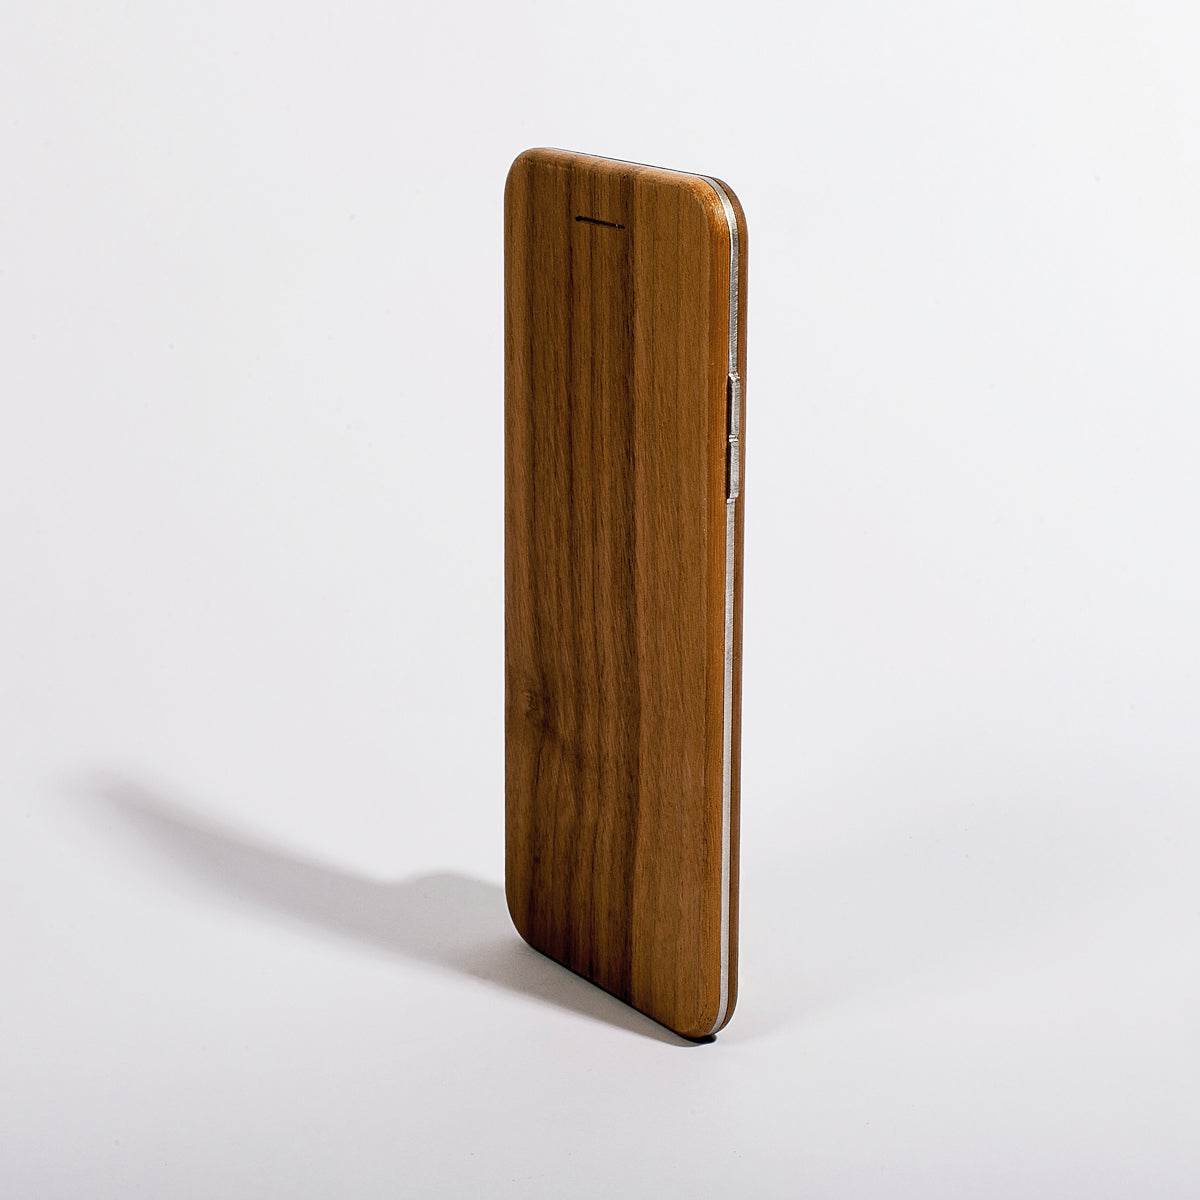 Digital Detox Phone – Walnut